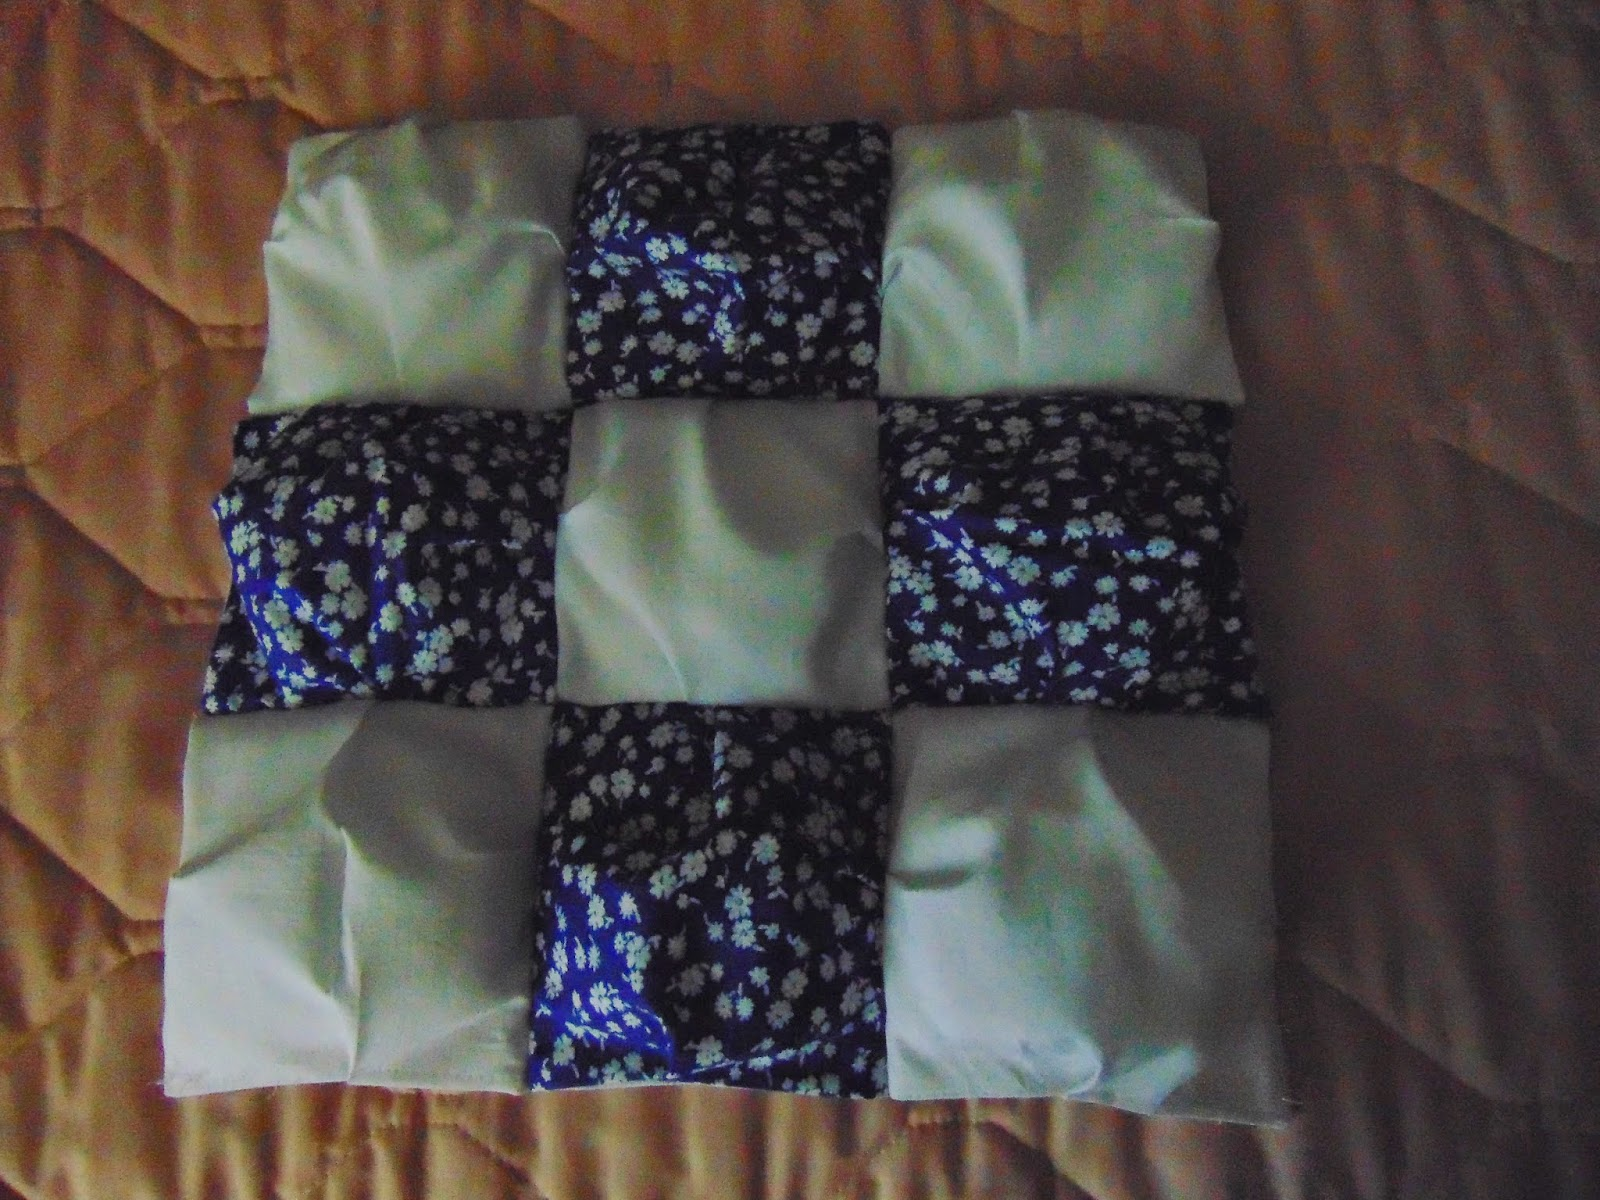 Blue and white alternating puffs or biscuits assembled for pillow or doll quilt